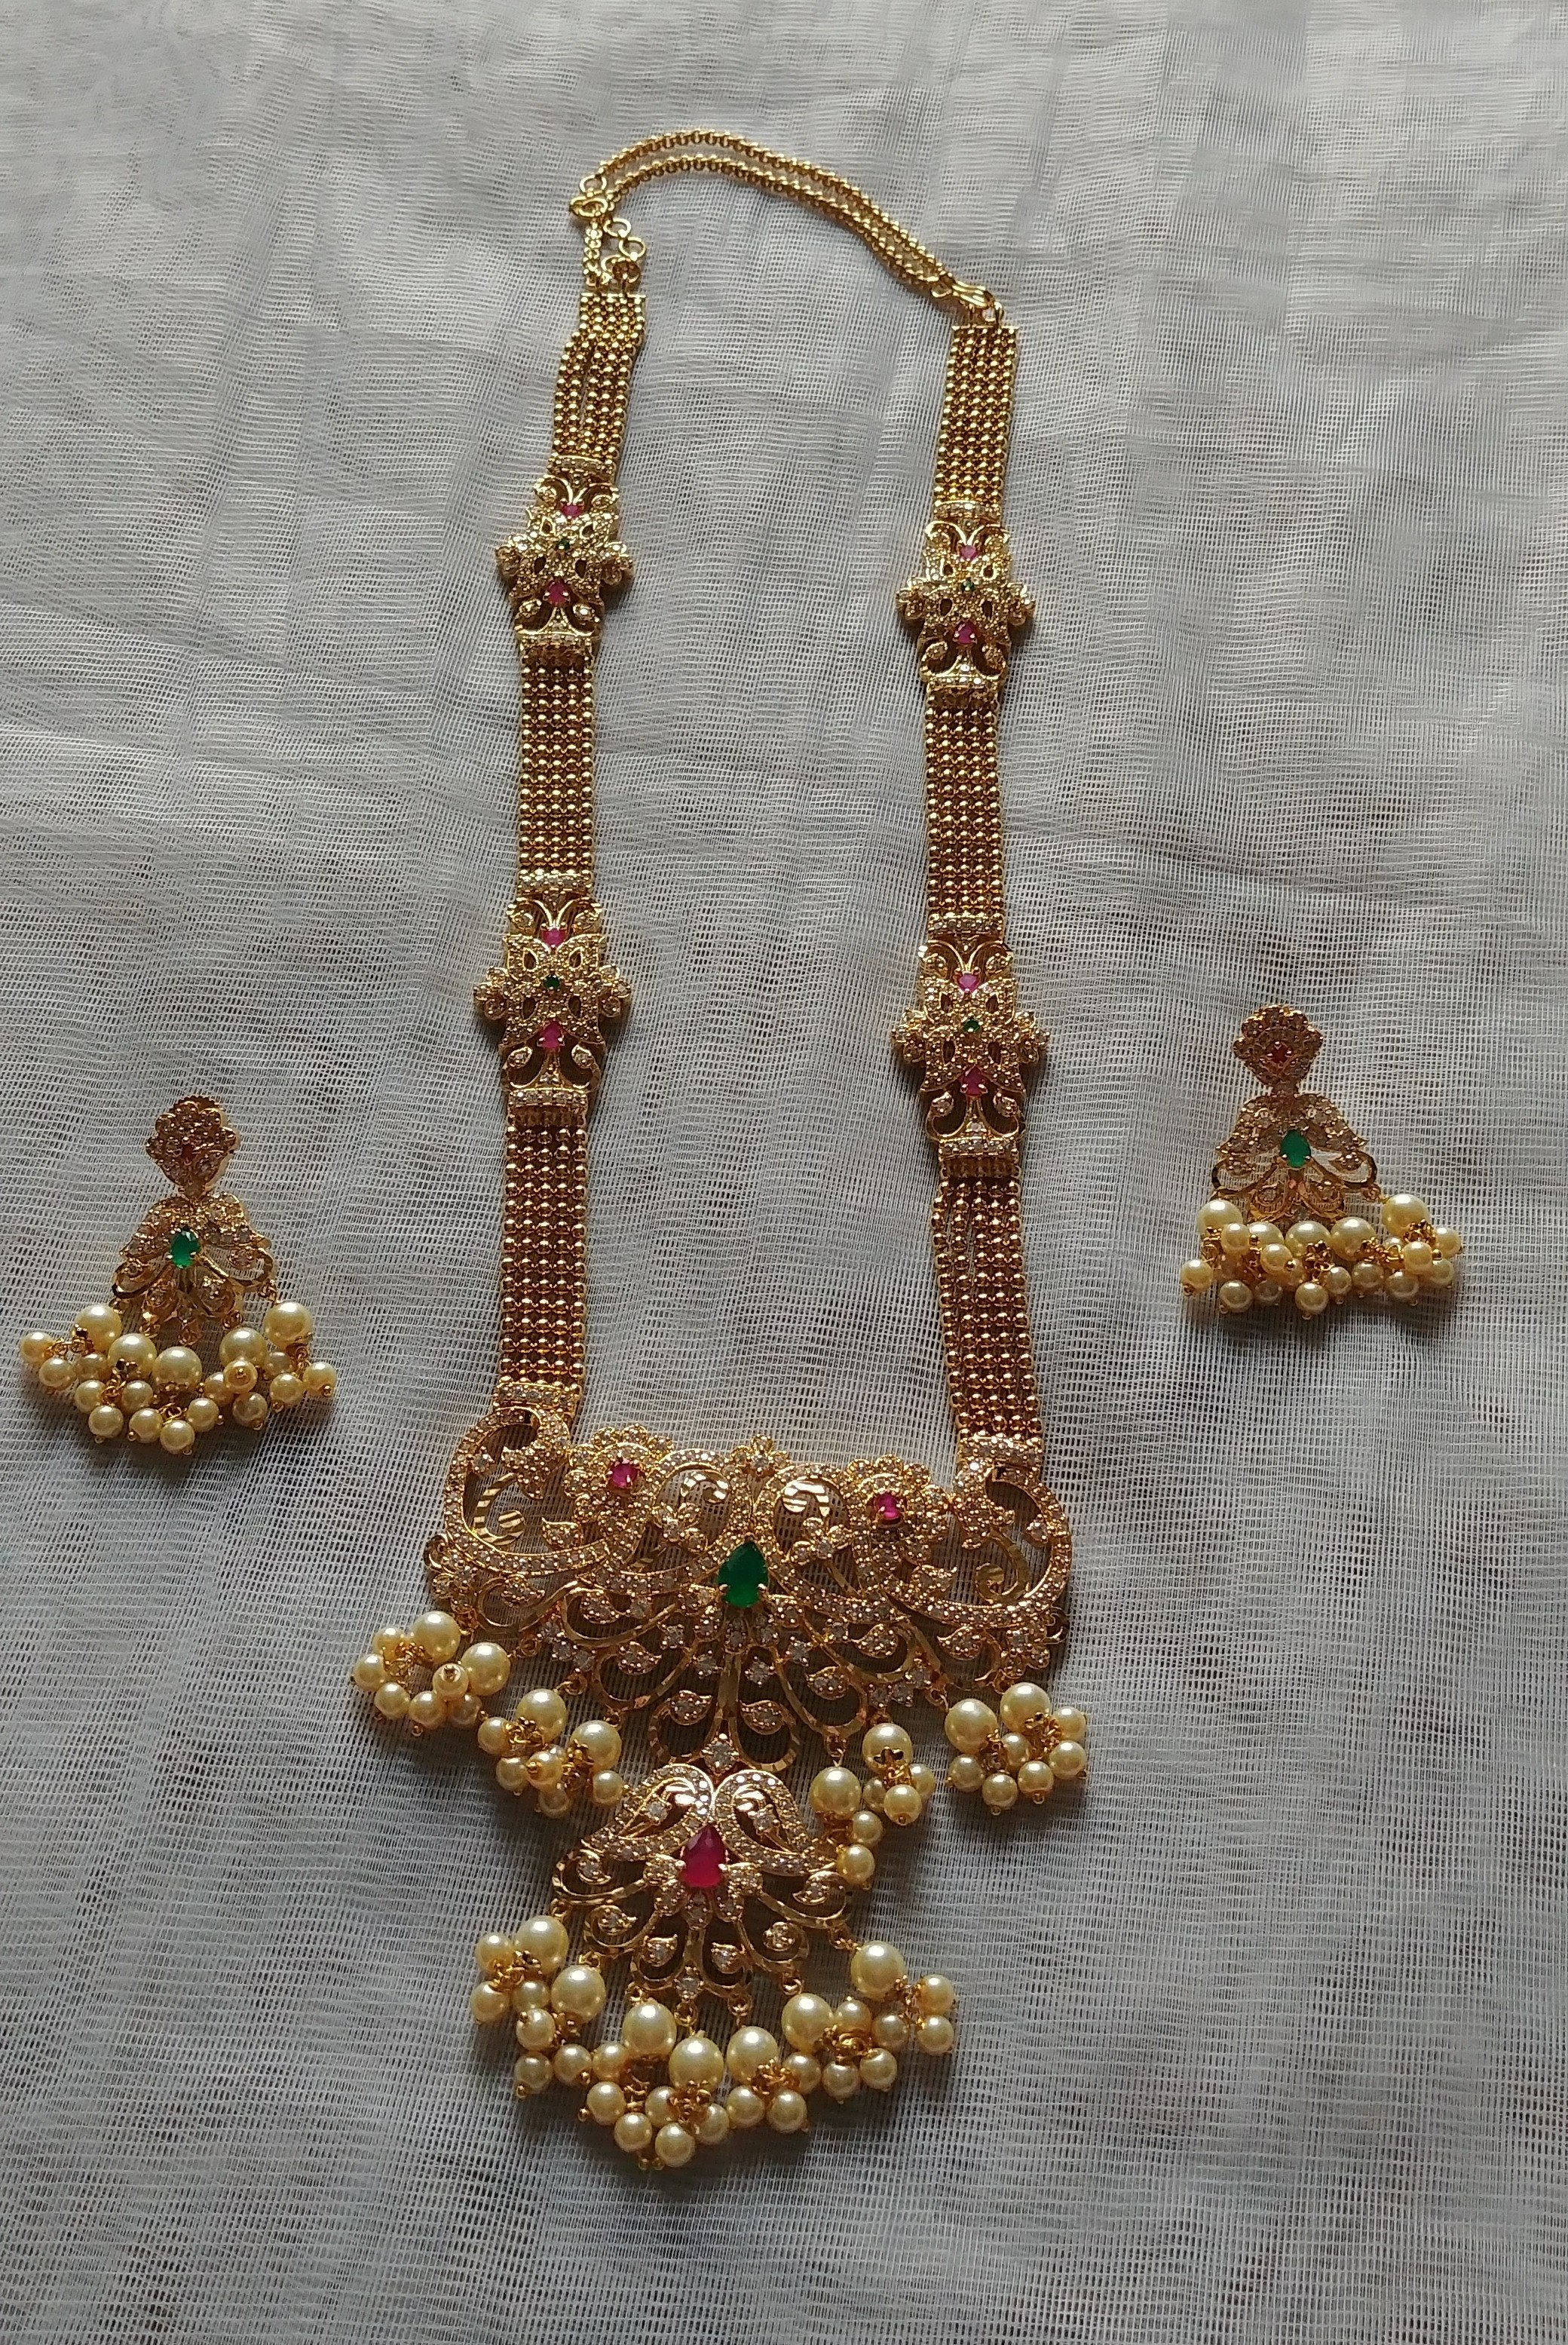 Necklace fine jewelry u accessory pinterest gold material